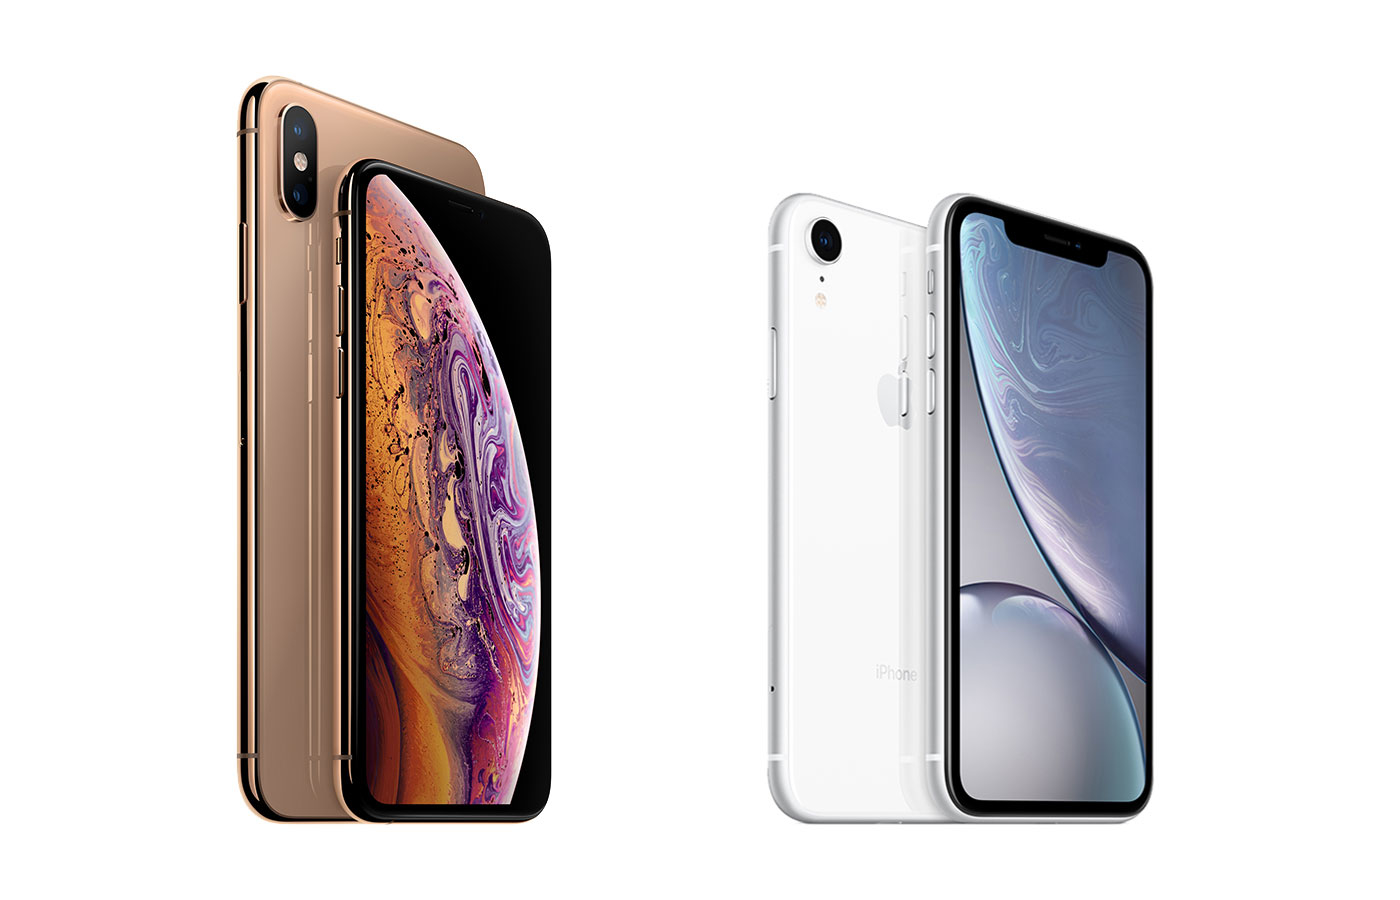 mobipunkt, iphone, iphone 7, iphone xs, iphone xr, kasutatud iphone, uus iphone, apple